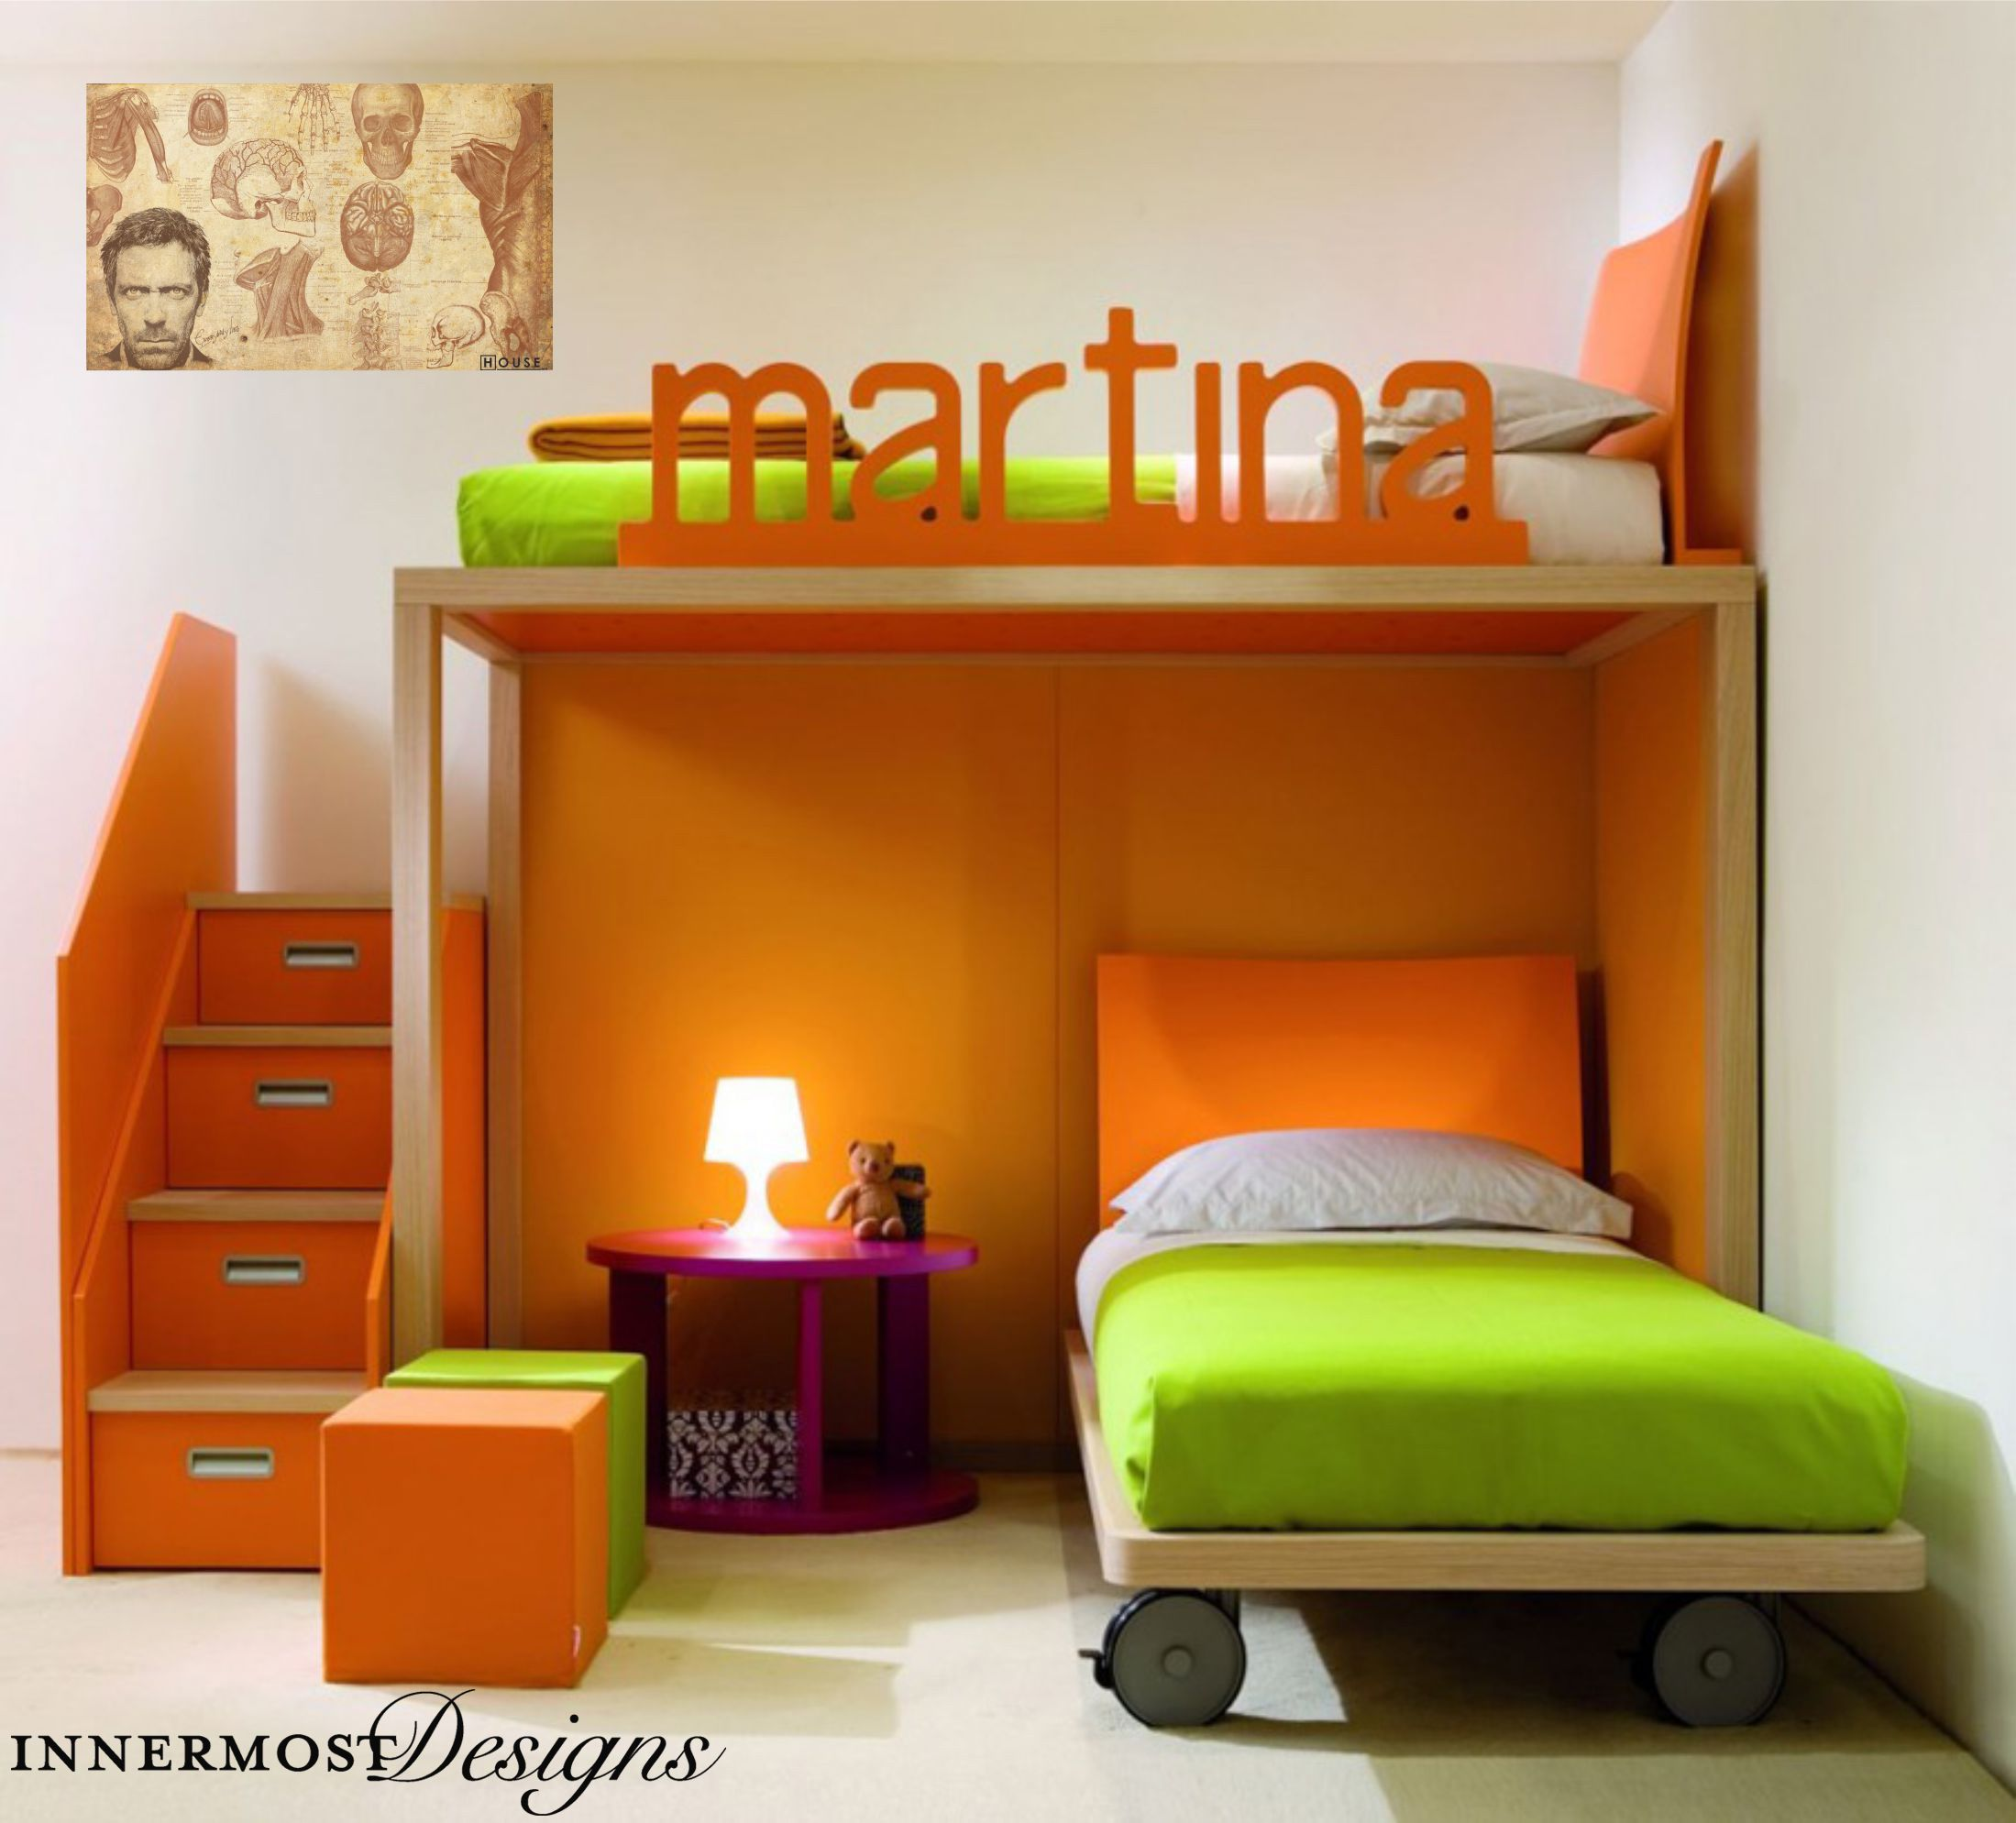 Great Bunk Beds For Girls With Martina Bedroom Decor And